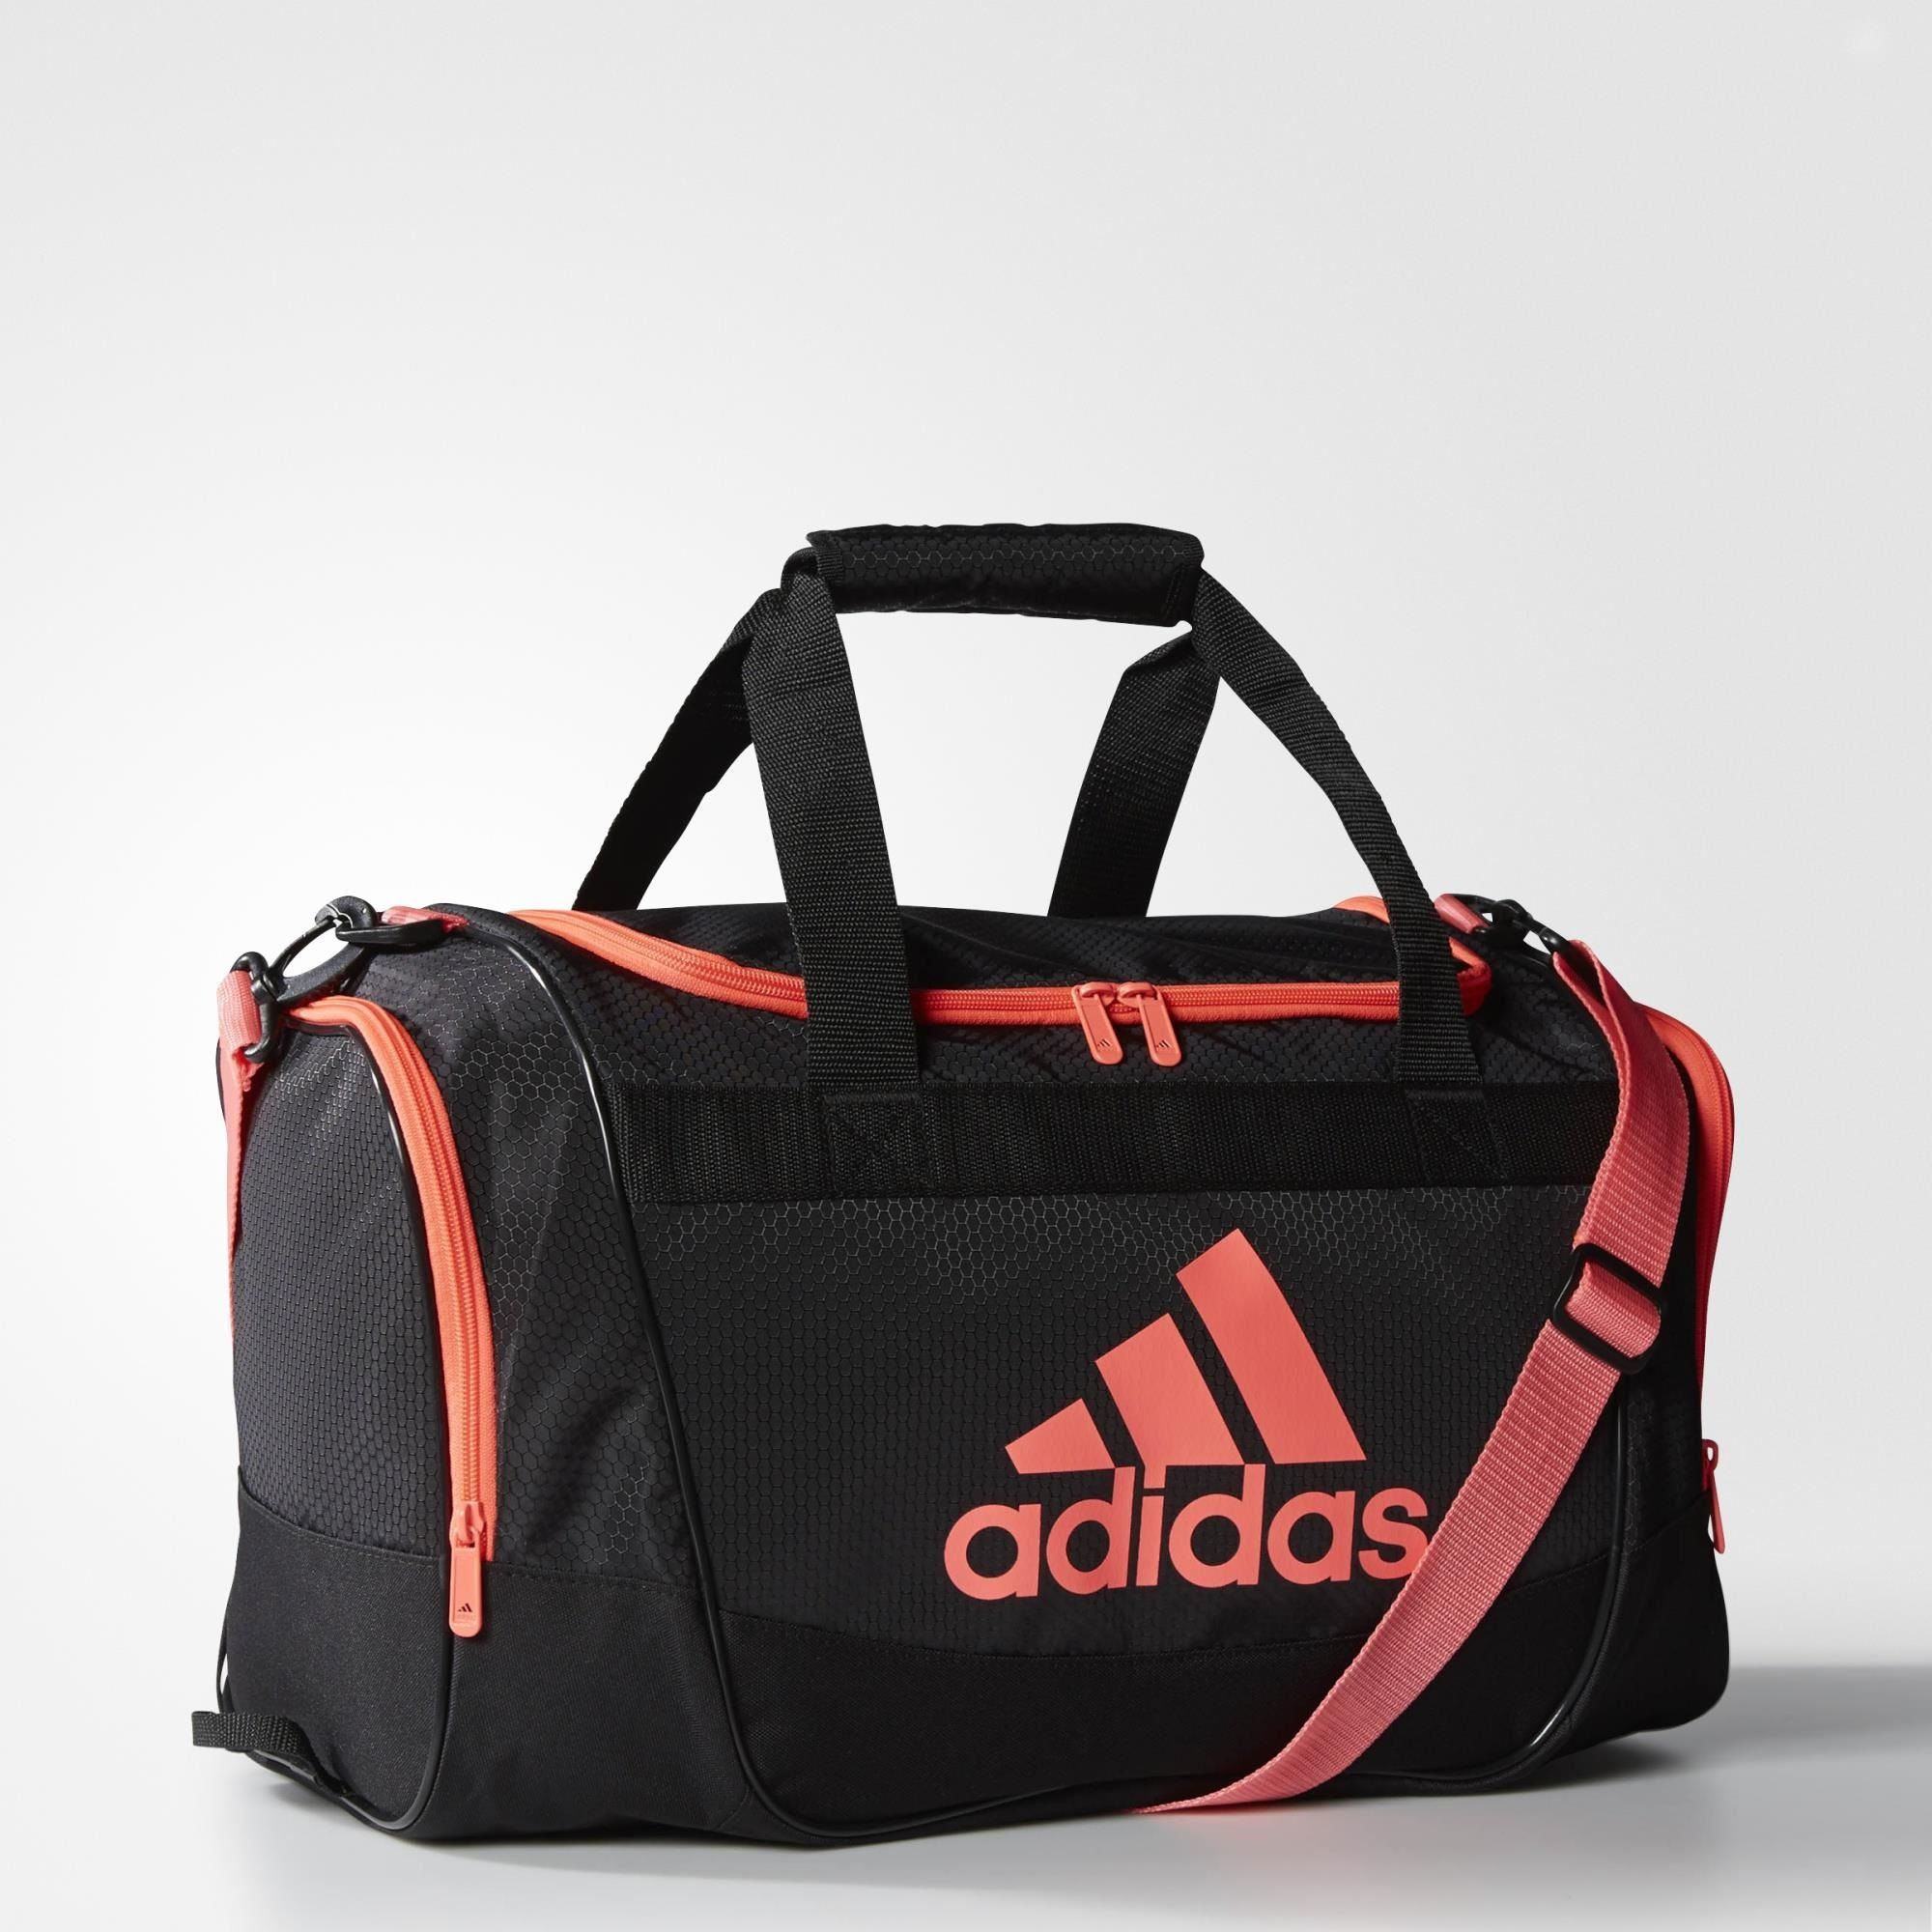 adidas - Defender 2 Duffel Bag Small  3443dfe6f6693